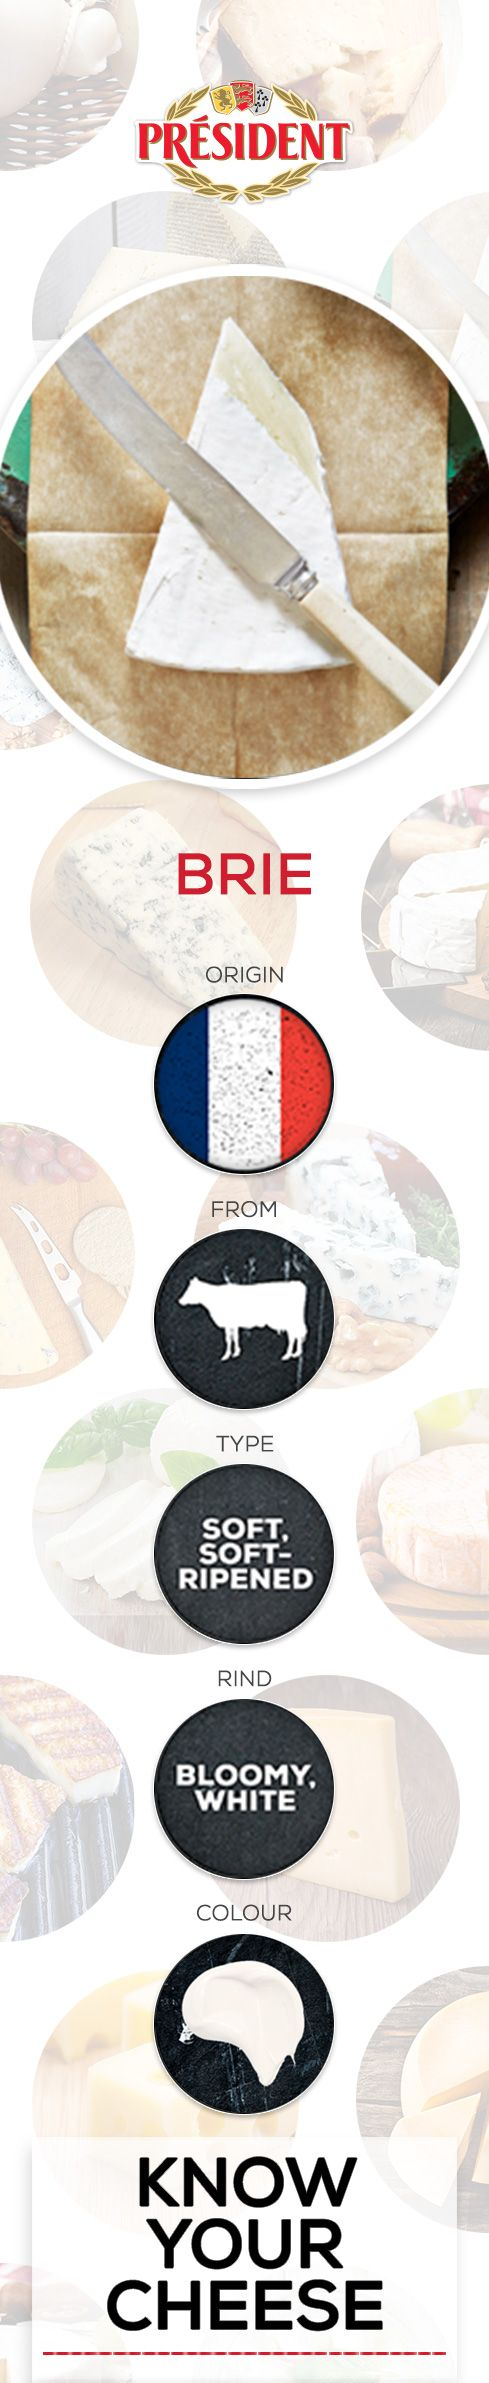 BRIE: One of the world's great dessert cheeses with a characteristic 'runny' texture and earthy flavour.  #cheese #knowyourcheese #presidentcheese #l'academie